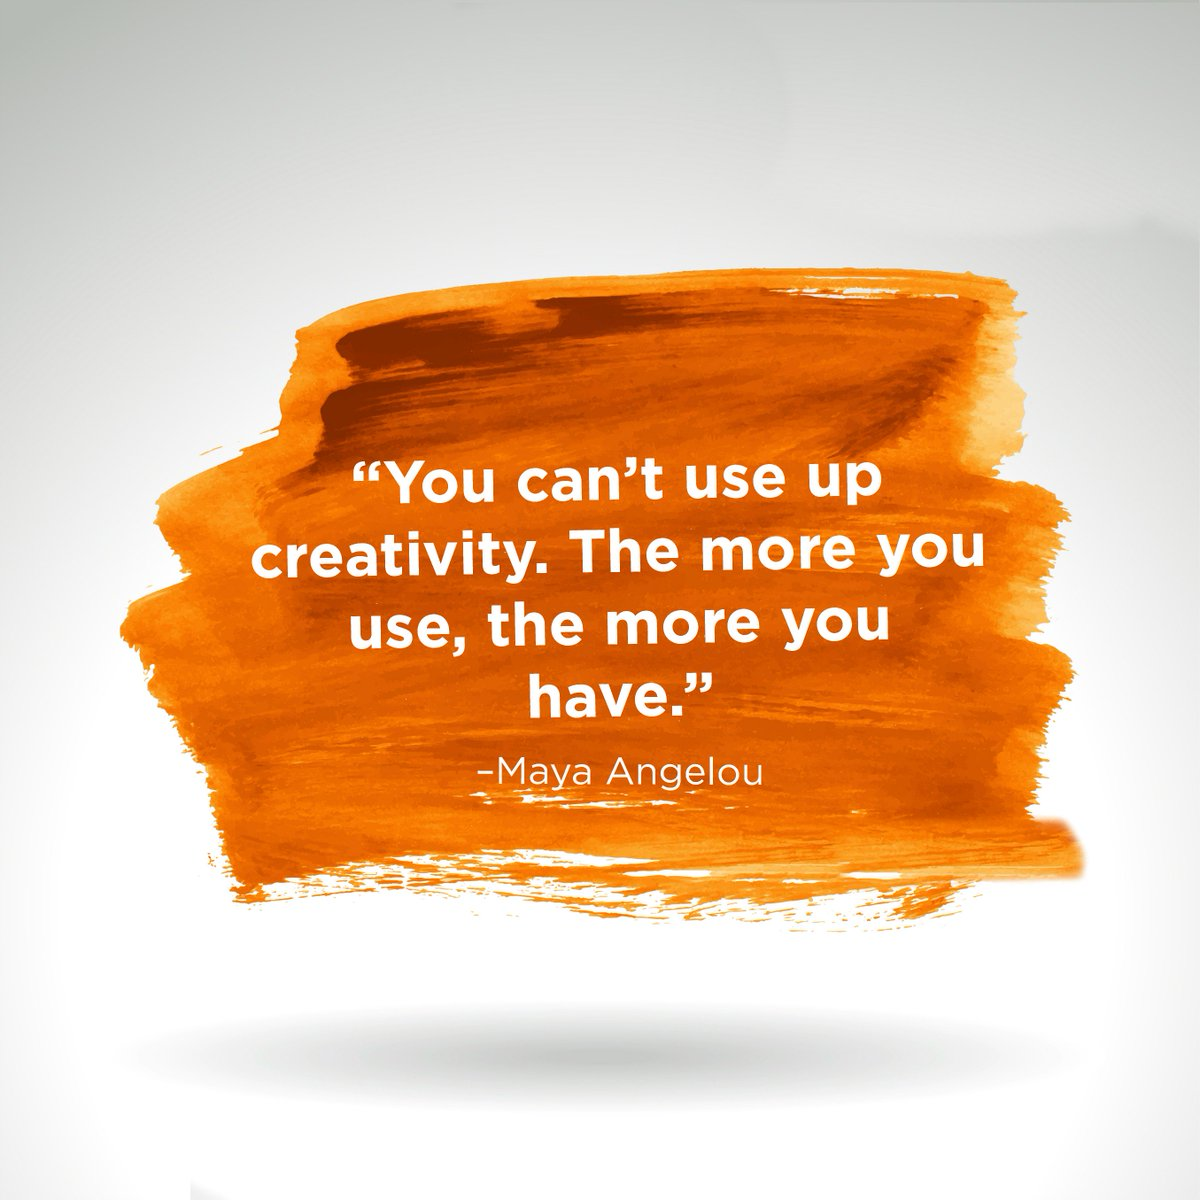 Getting back into #workmode with wise words by Maya Angelou #creativity #motivation https://t.co/K4qy5NA1t8